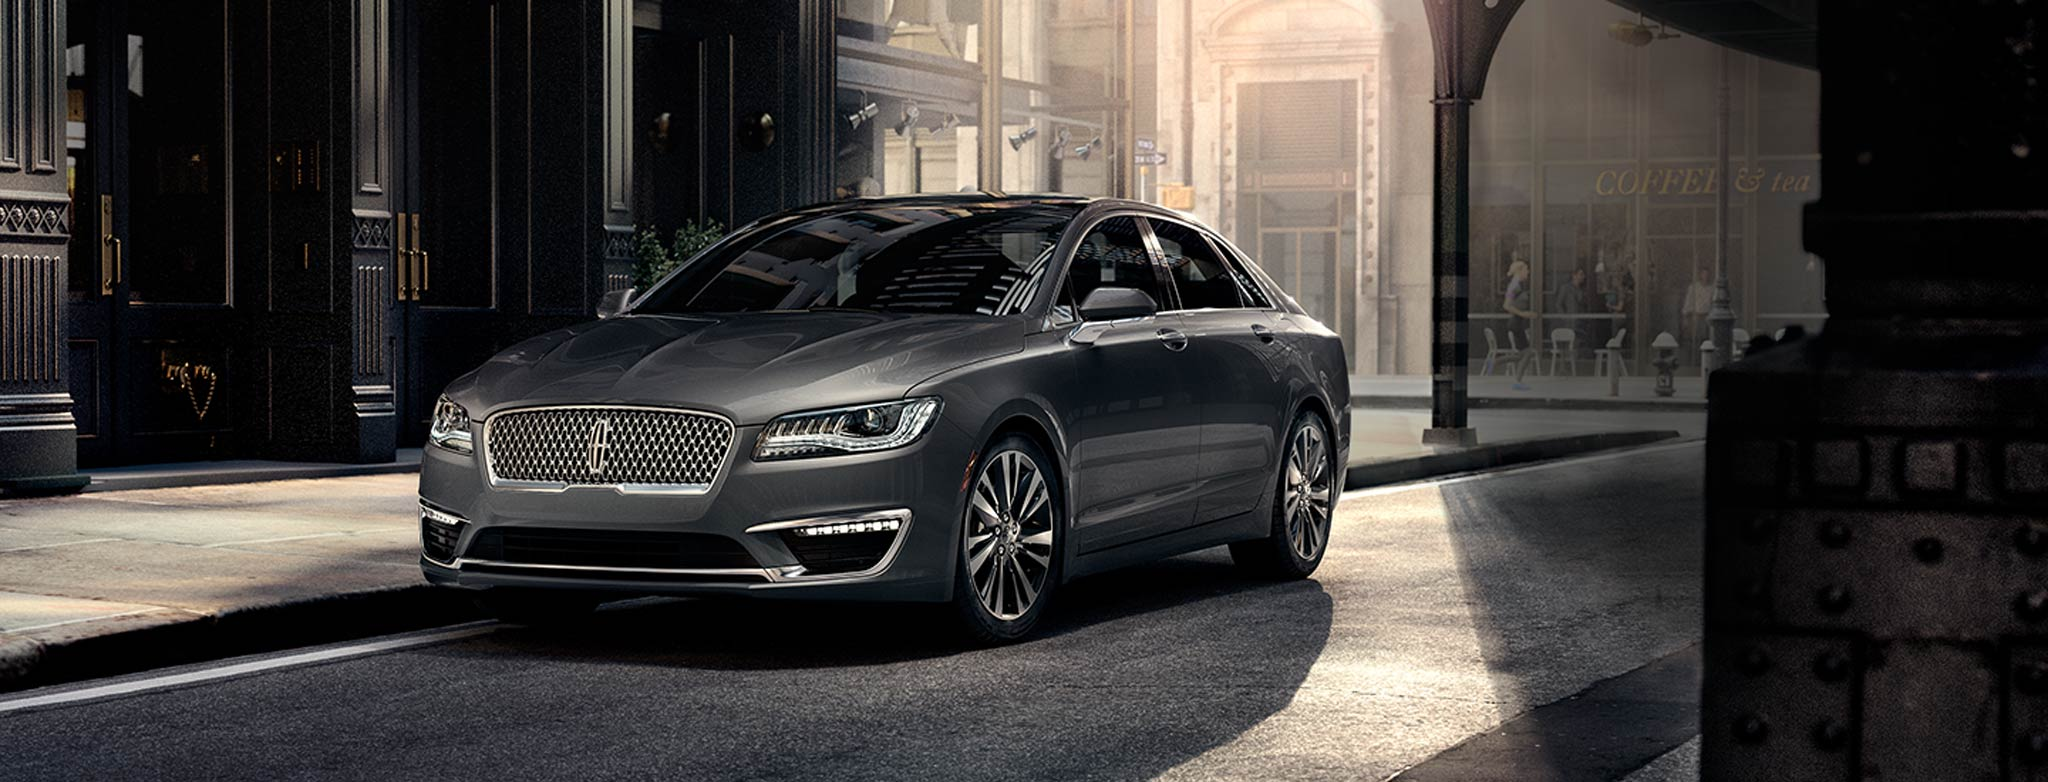 Lincoln Mkz Lease >> New Lincoln Mkz Lease And Finance Offers Madison Wi Kayser